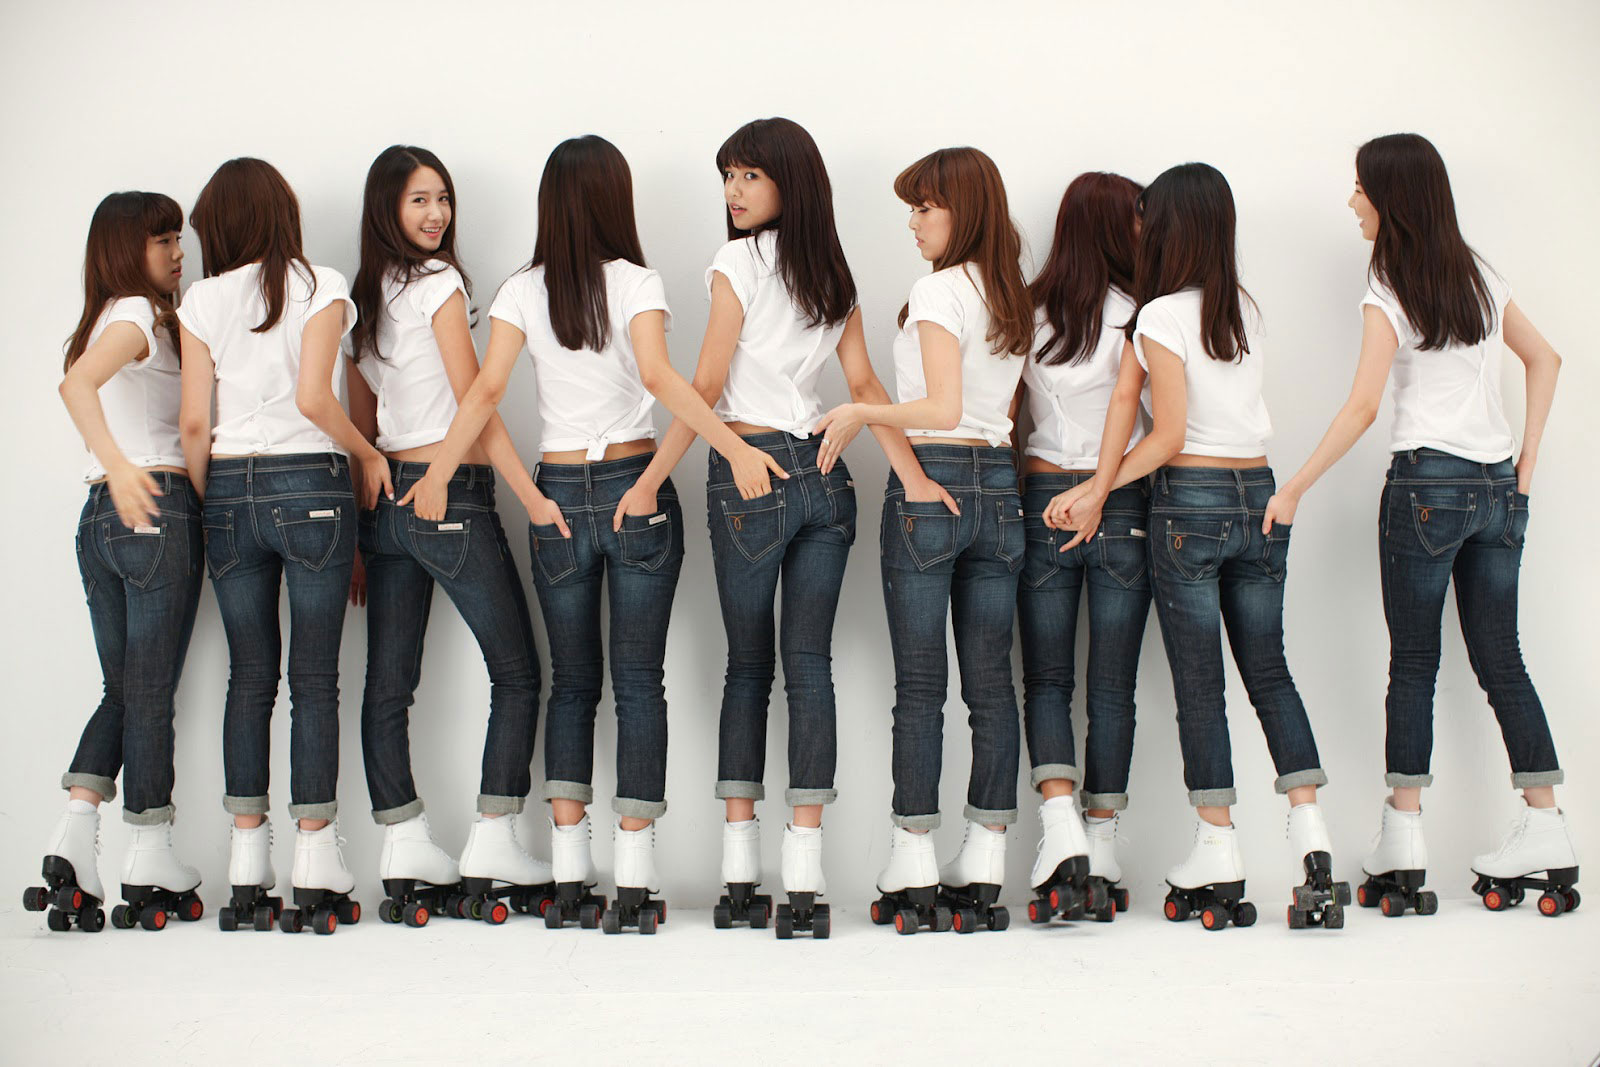 SNSD Gee concept photo